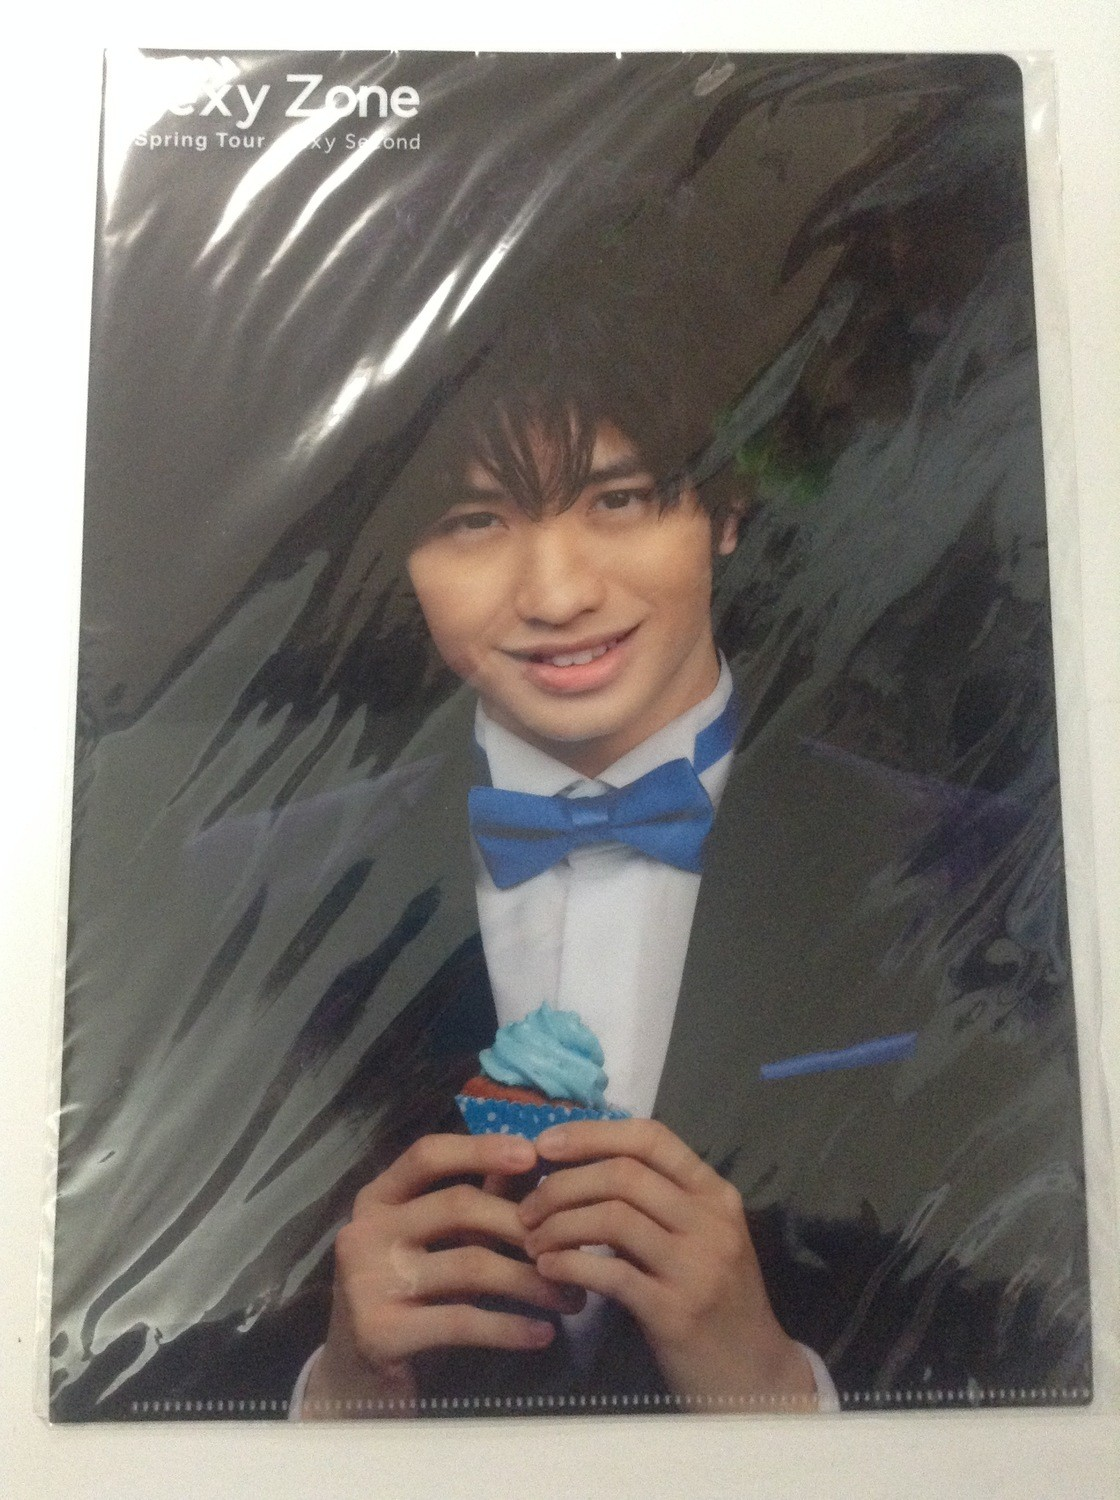 Sexy Zone Sexy Second Spring Tour Kento Clearfile